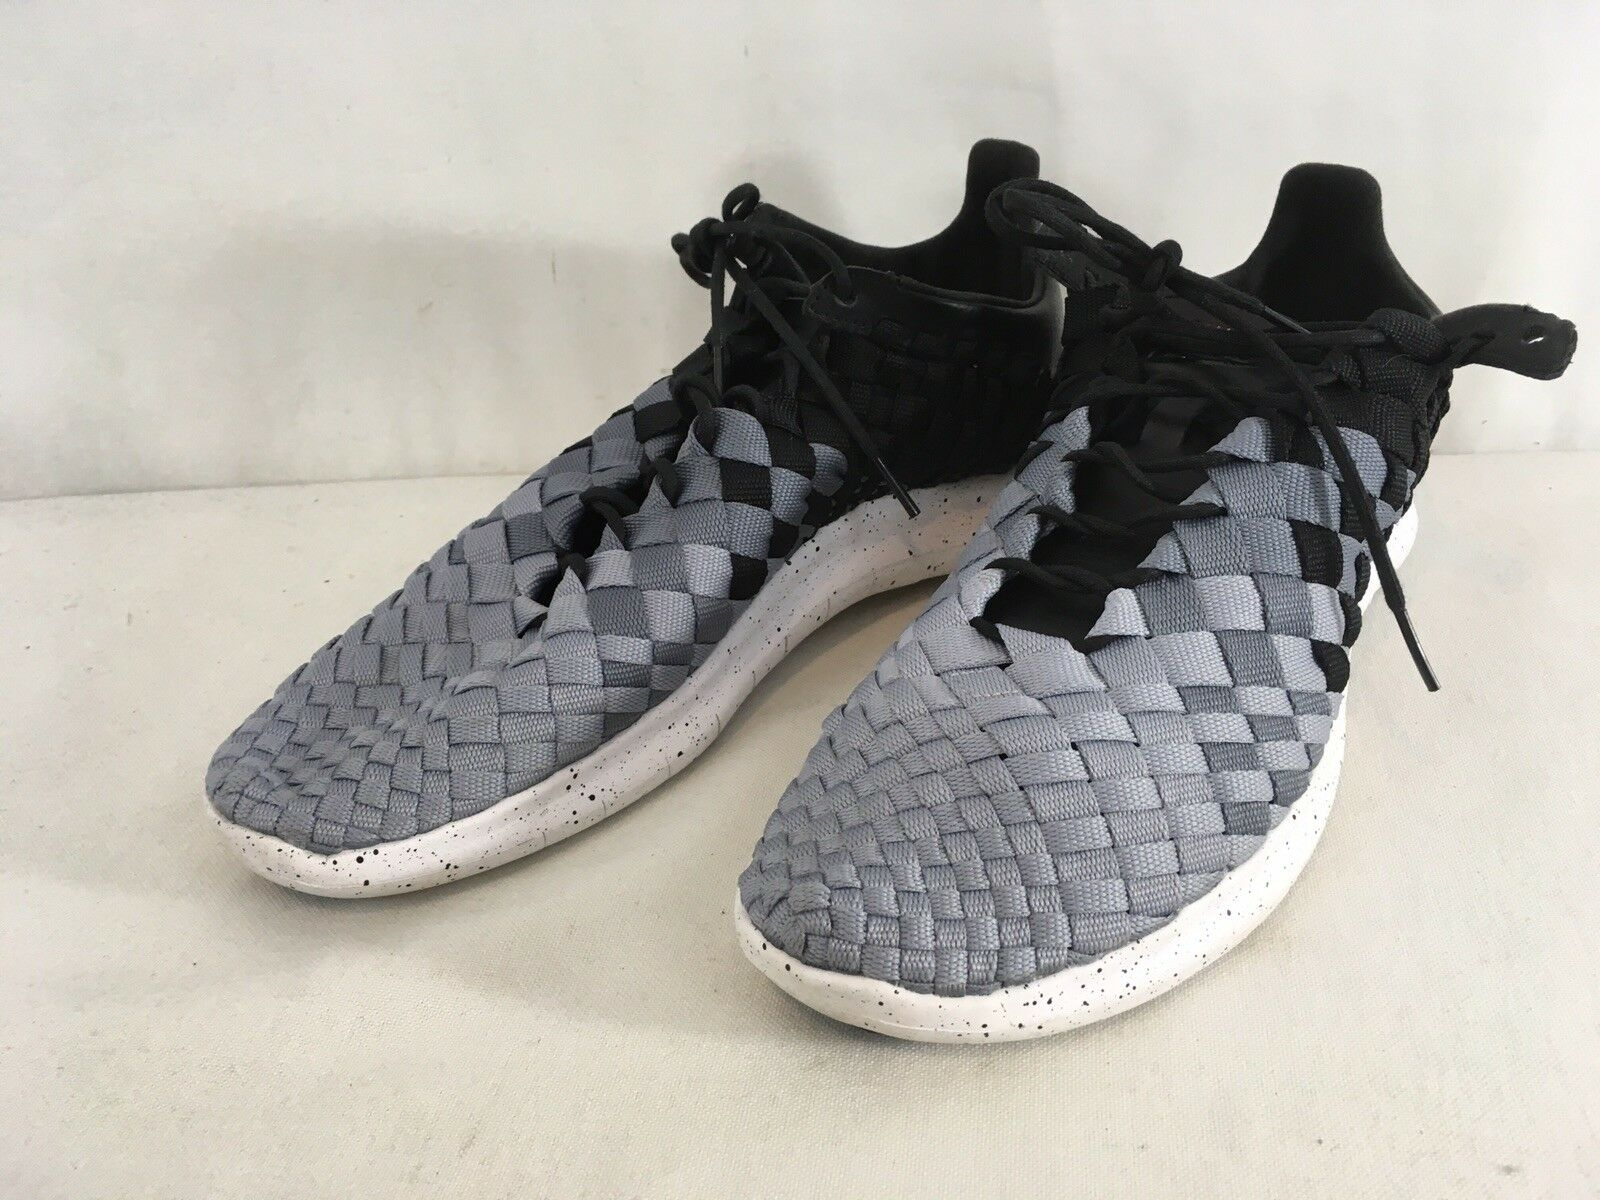 Nike Lab Inneva Free Woven 894995-001 Mens 11 Black Silver Sneaker shoes